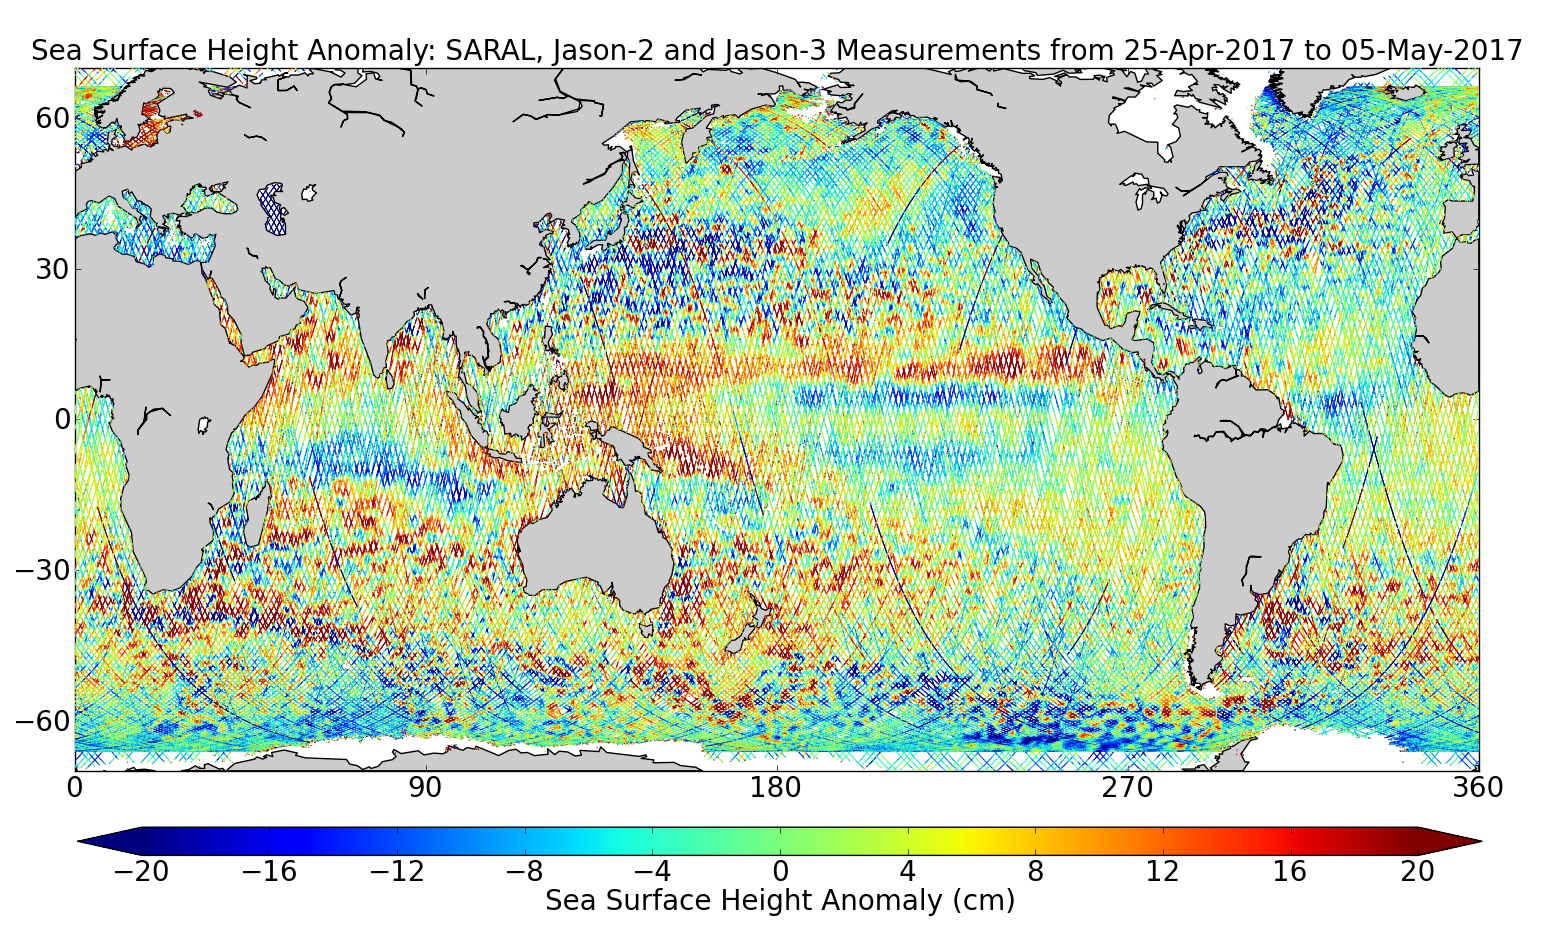 Sea Surface Height Anomaly: SARAL, Jason-2 and Jason-3 Measurements from 25-Apr-2017 to 05-May-2017